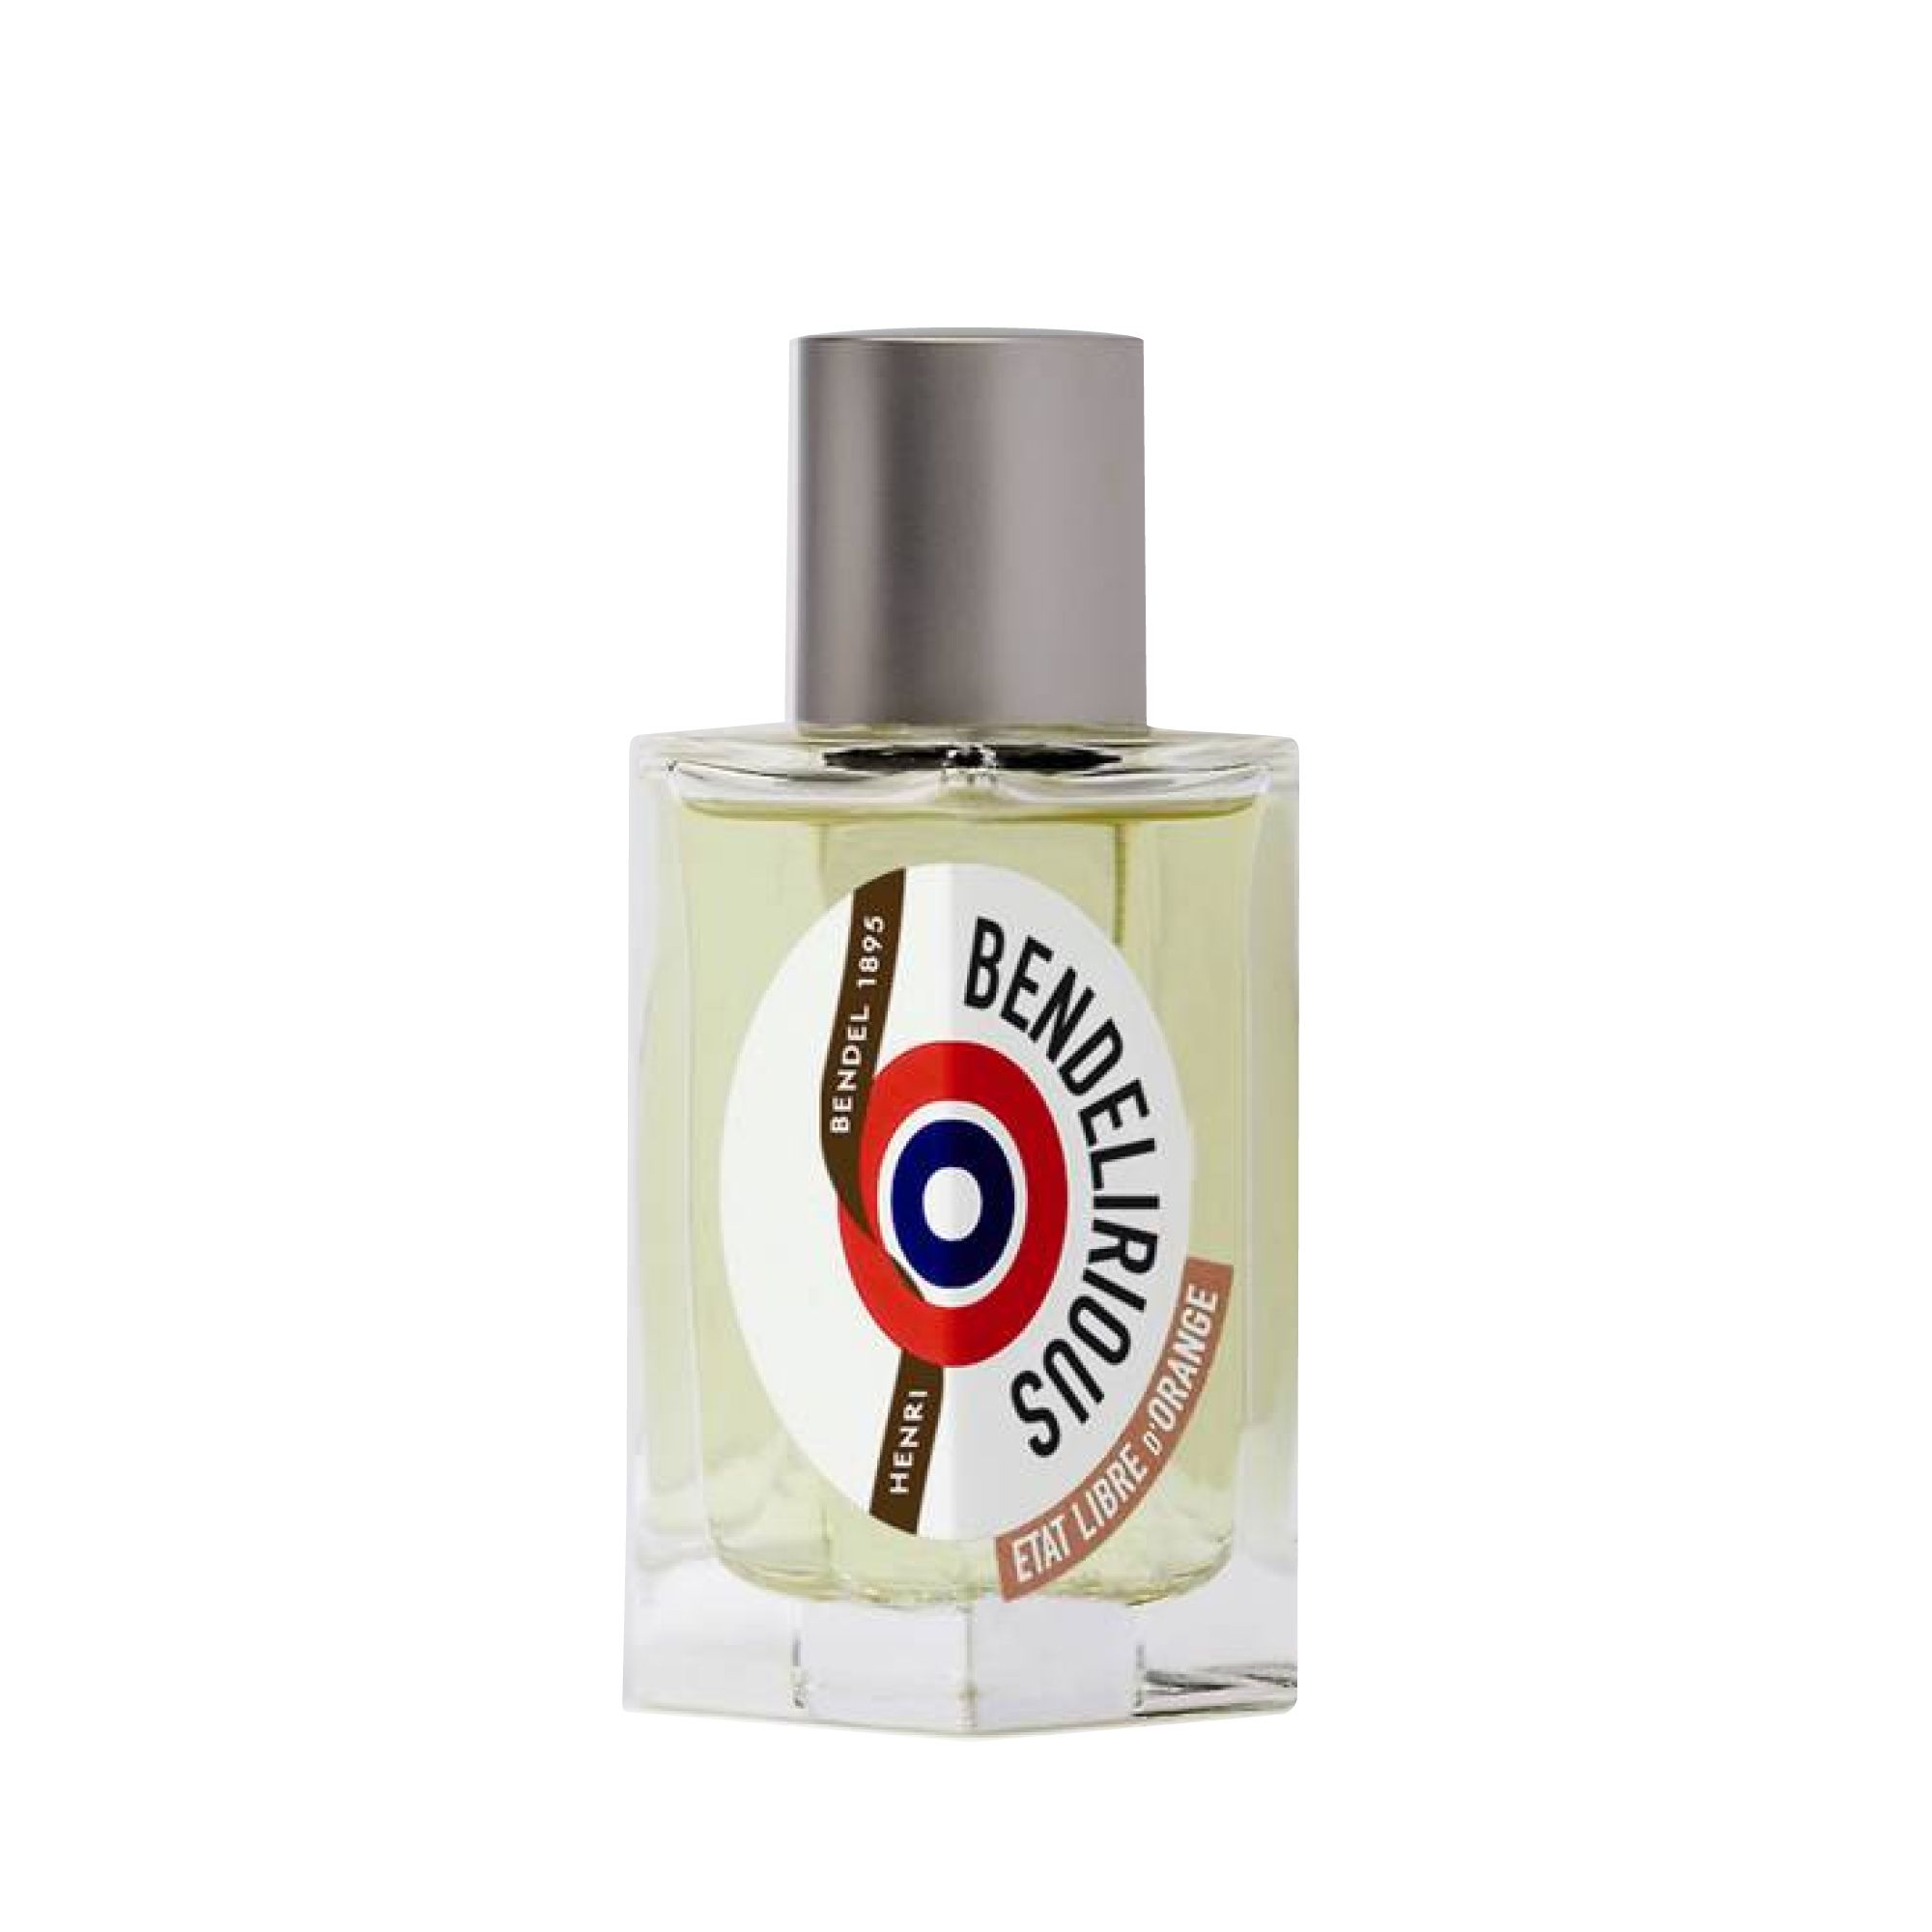 Etat Libre d'Orange Etat Libre d'Orange Bendelirious Eau de Parfum 50ml